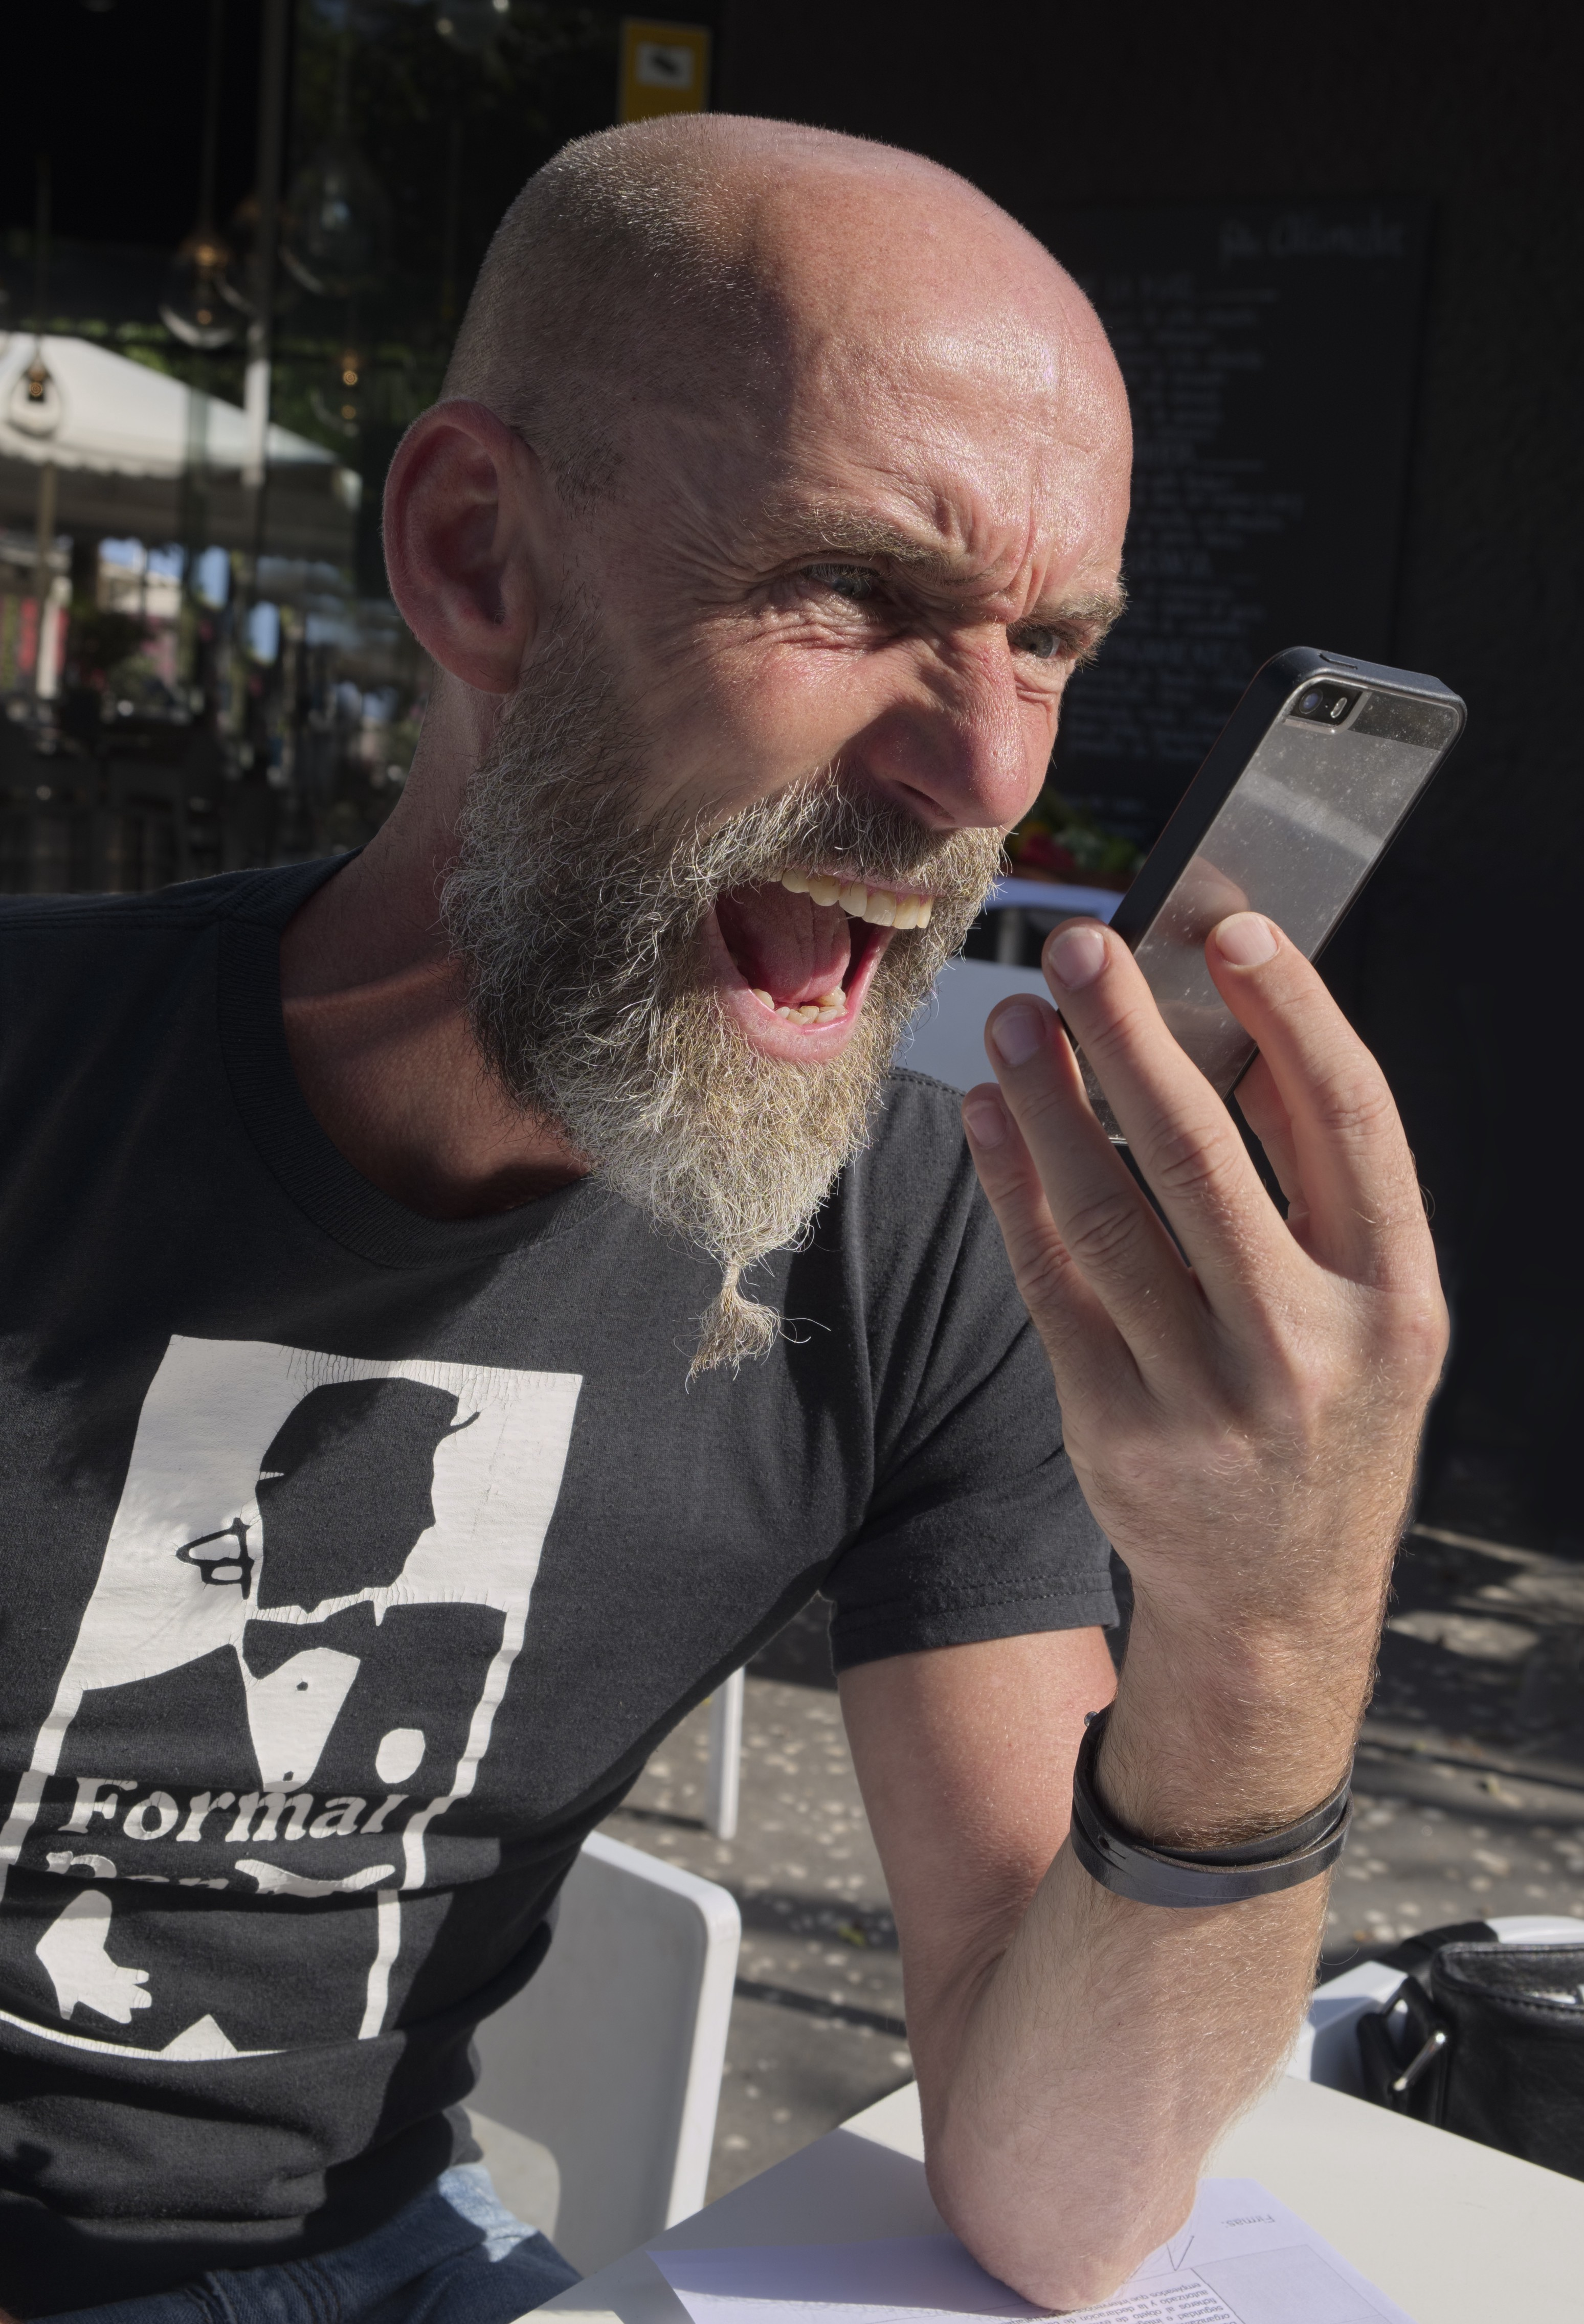 Angry white man yelling into phone.